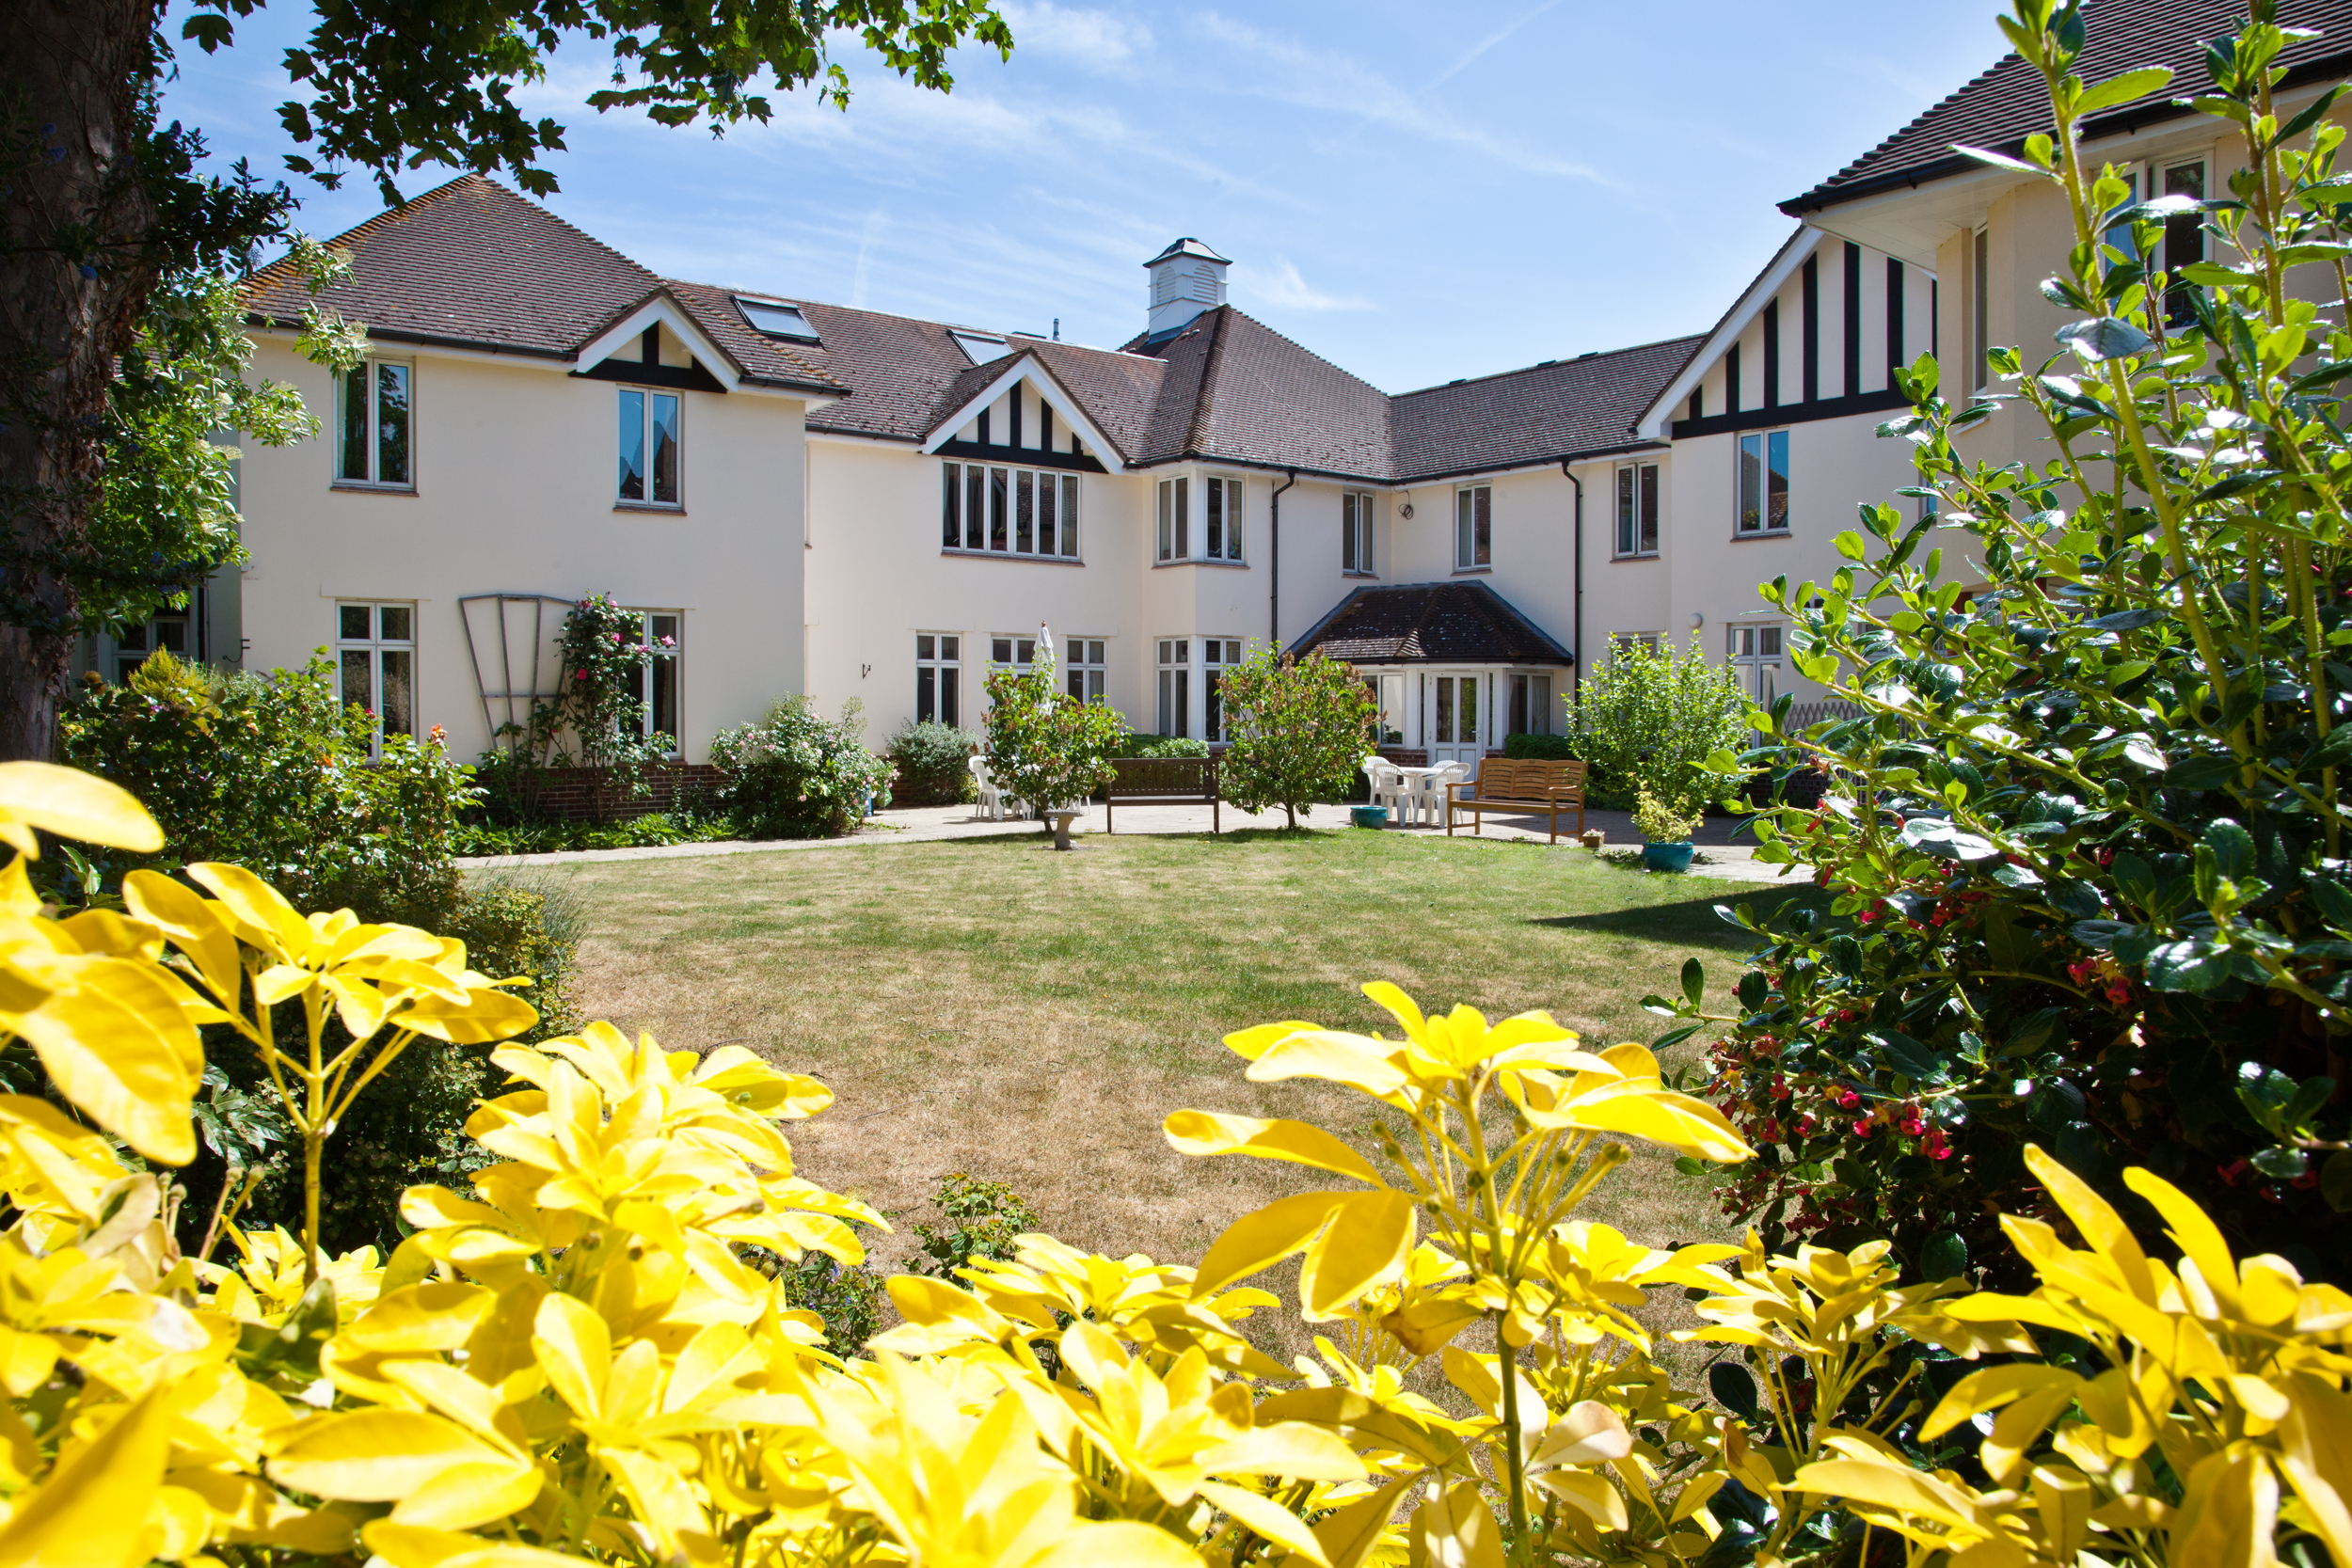 Whitegates - 01784 441 287A beautiful purpose built facility, set in a quiet, riverside location where we welcome people requiring residential, nursing care